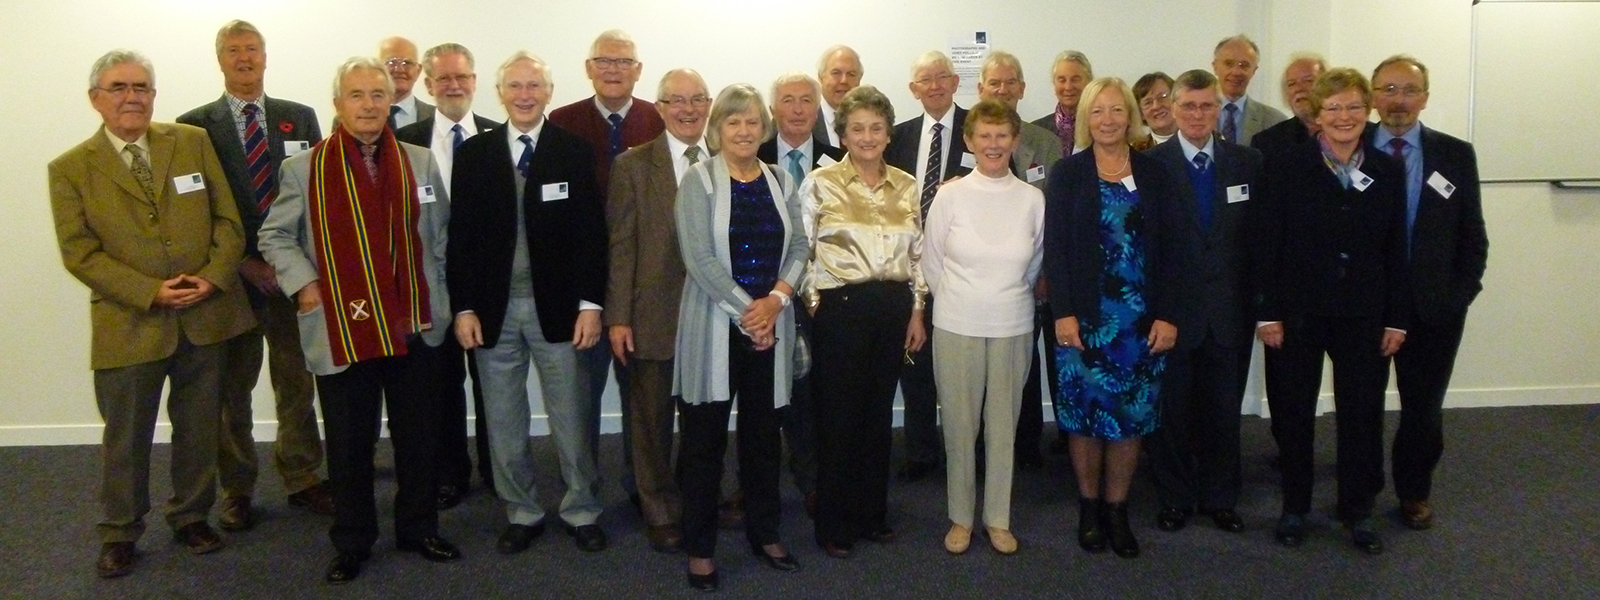 Participants at the 50th anniversary reunion of 1964 graduates of the Royal College, University of Strathclyde